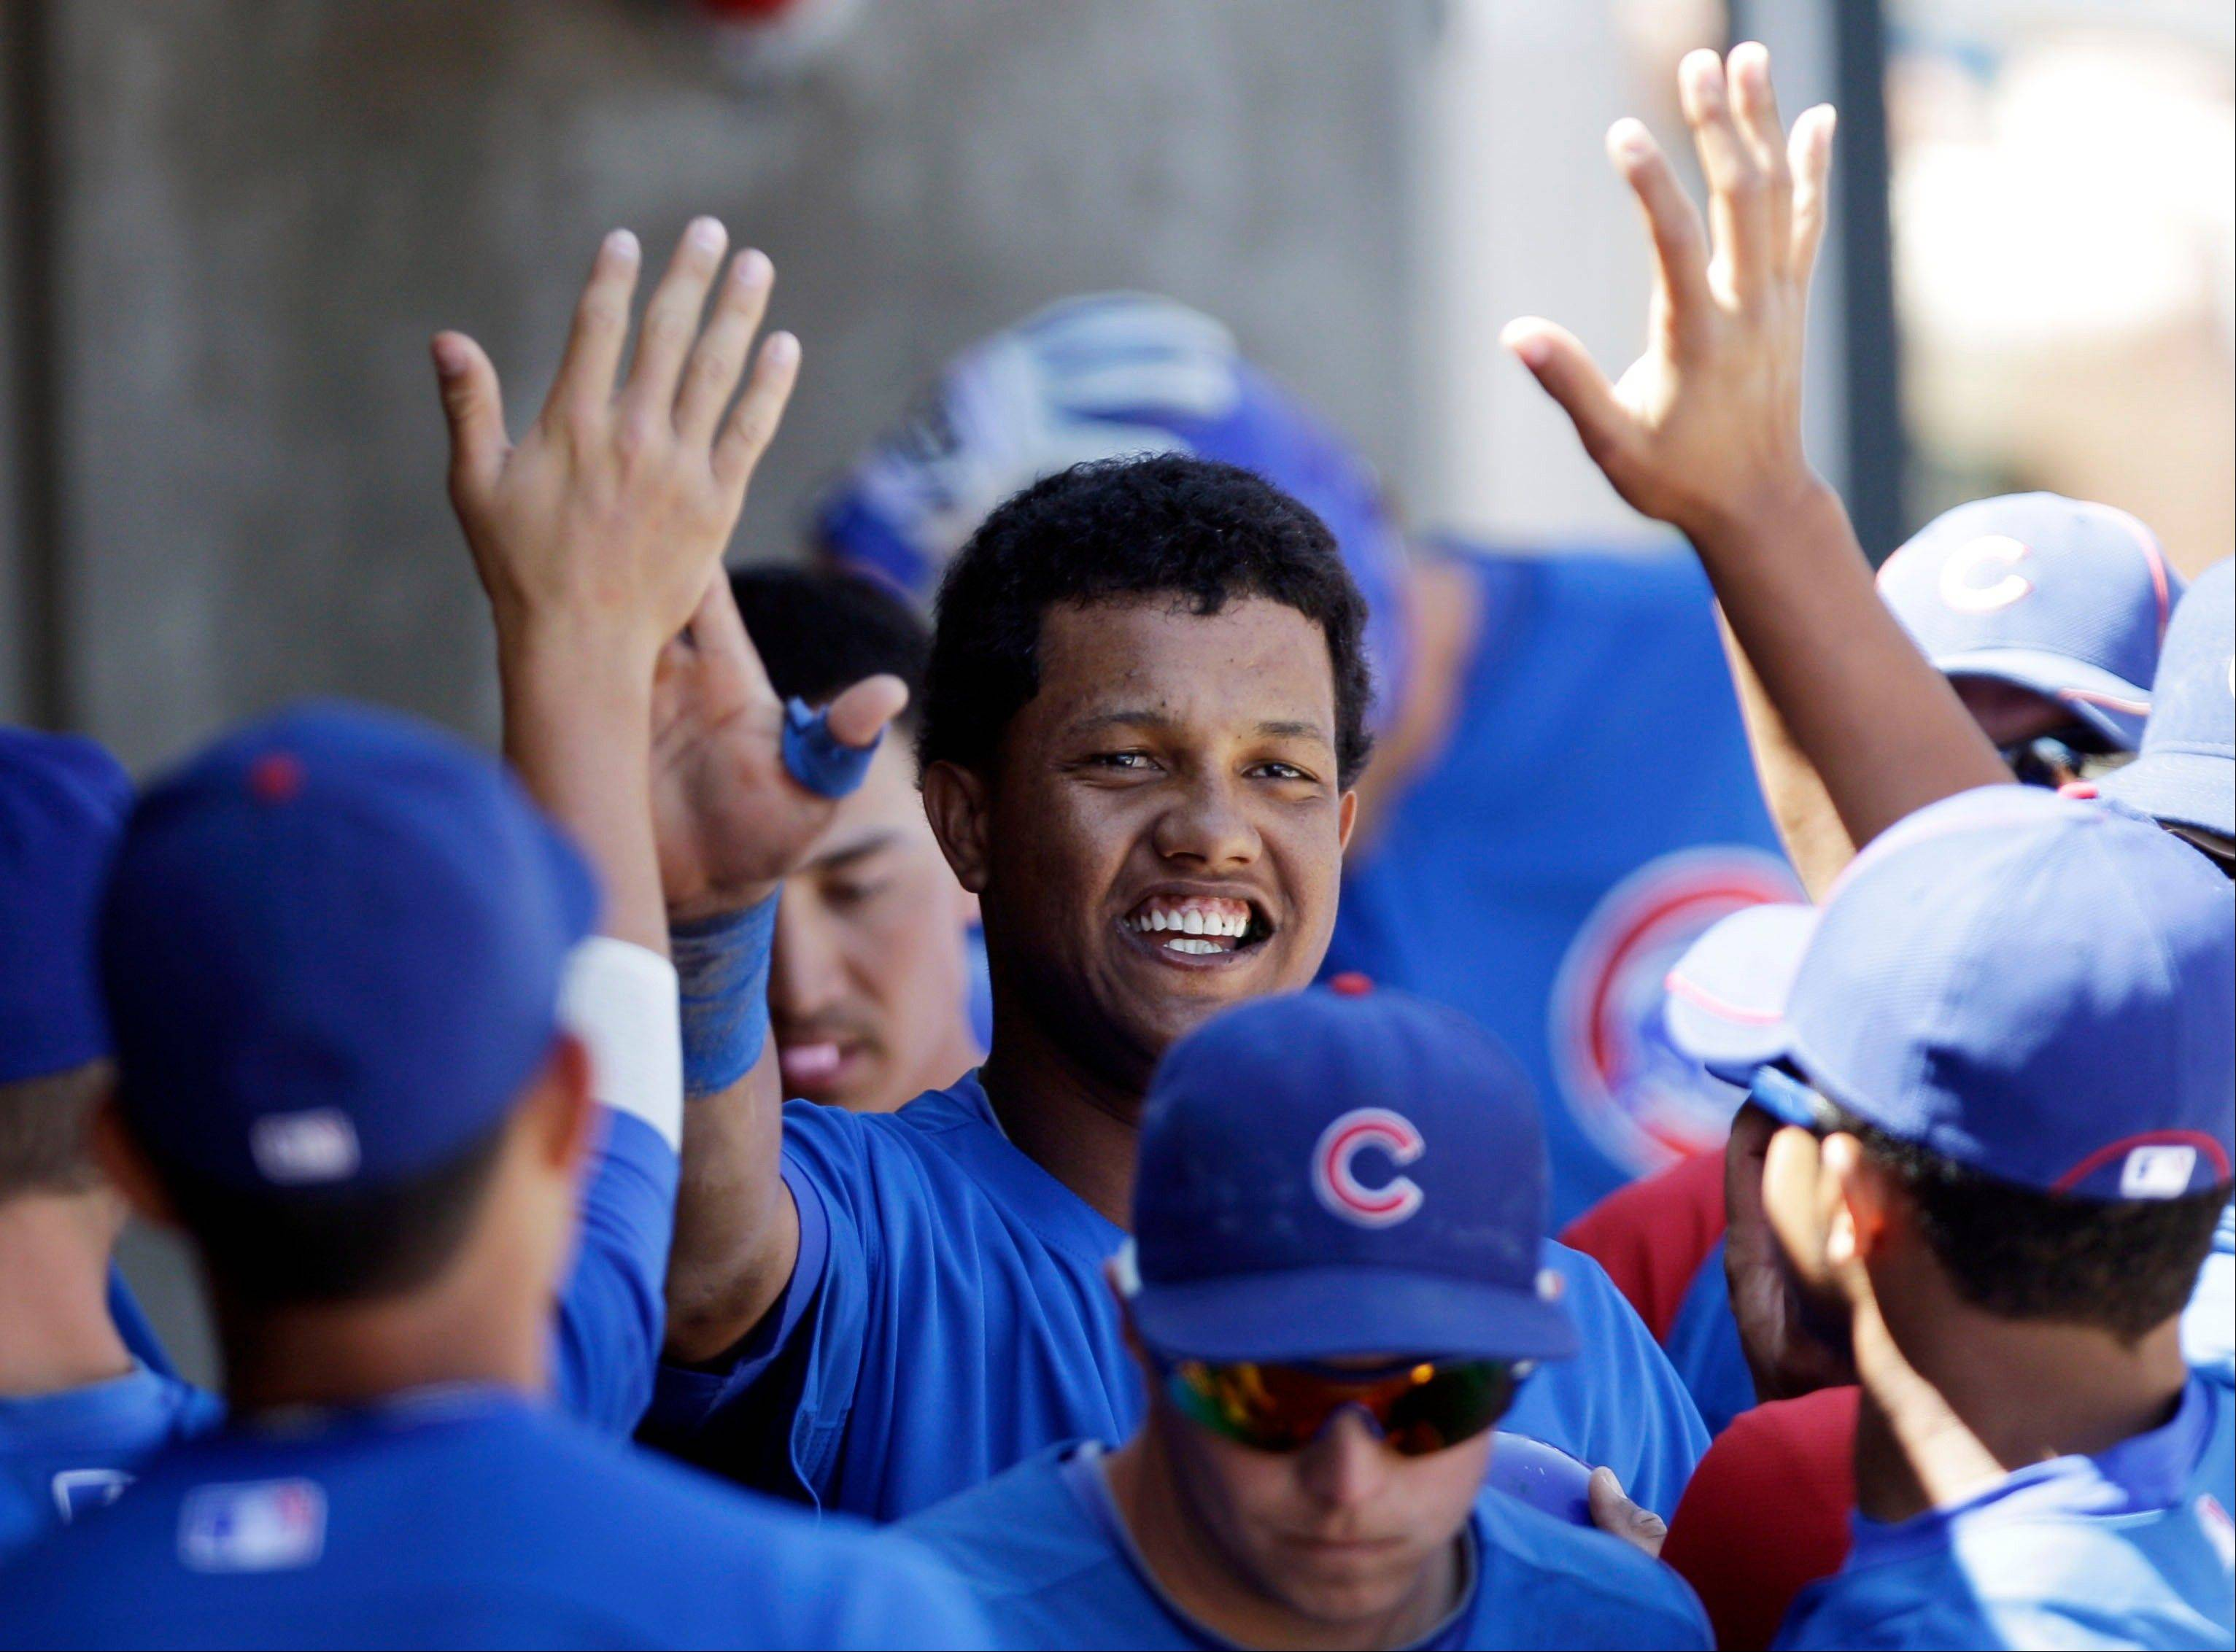 9 questions the Cubs hope to answer this season